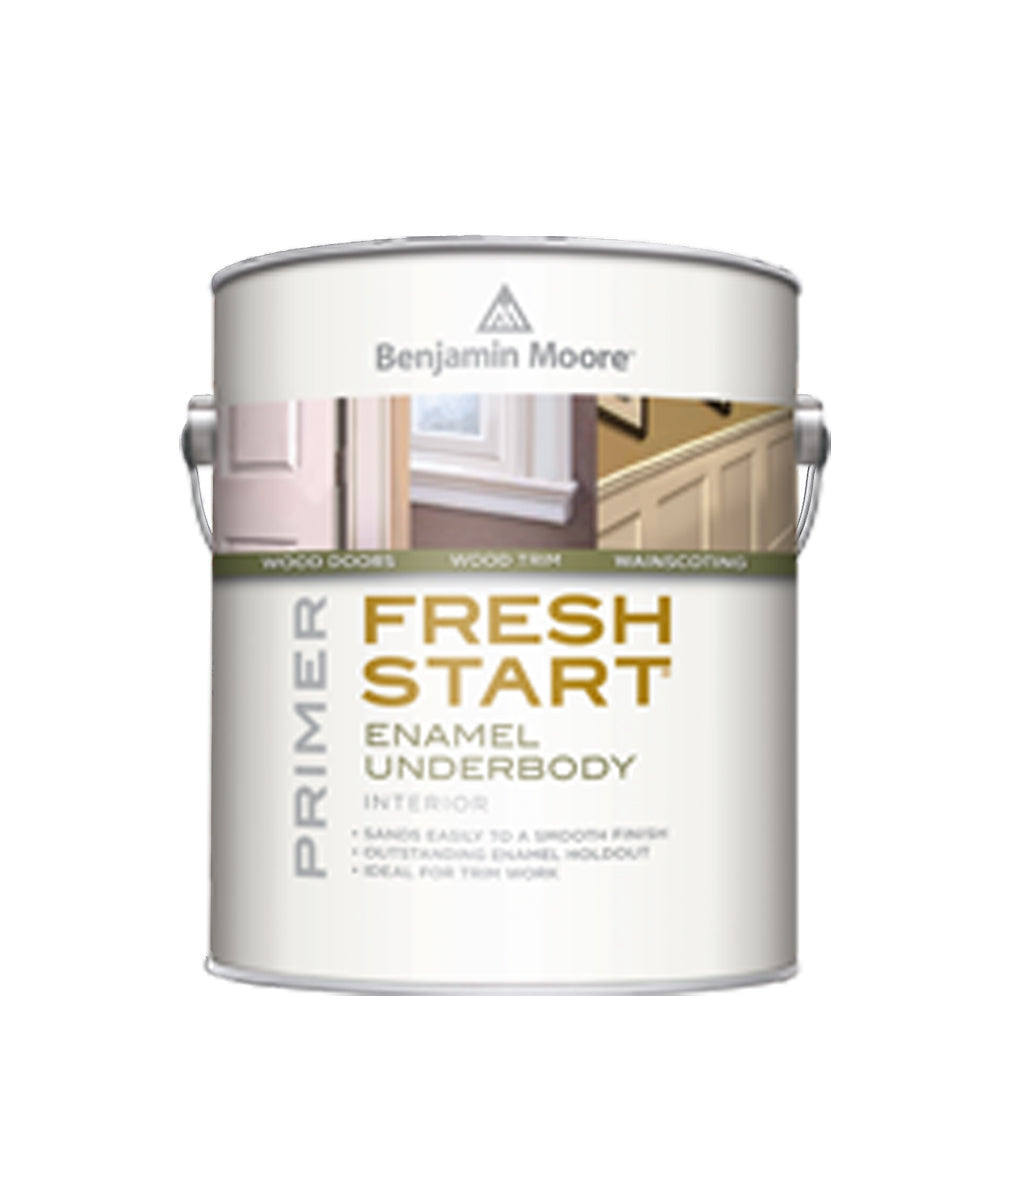 Benjamin Moore Fresh Start enamel underbody primer, available at Creative Paint in San Francisco, South Bay & East Bay.